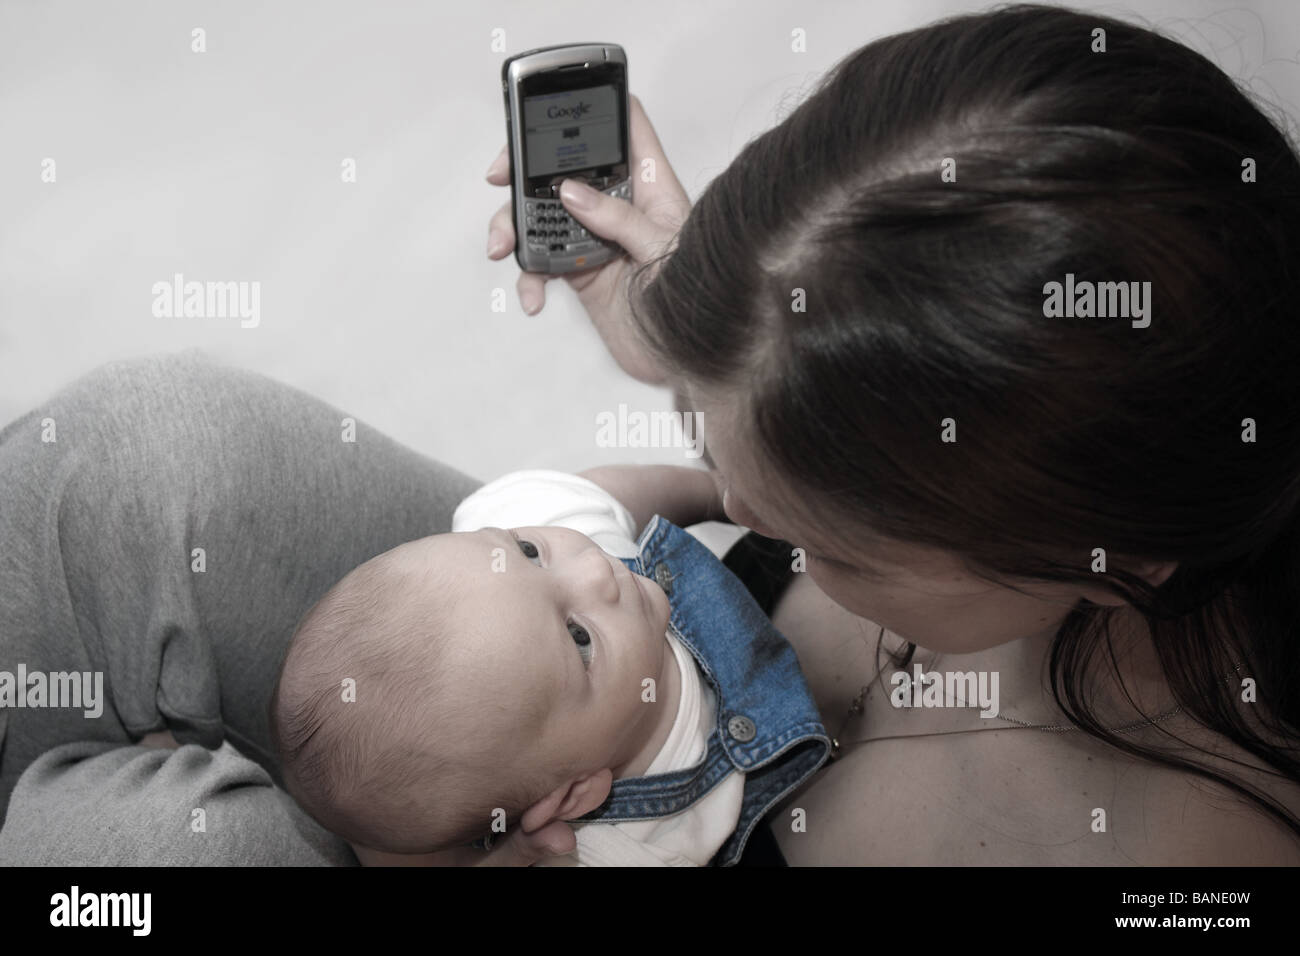 A young mother with her baby boy using a Blackberry PDA mobile phone searching the internet on Google search engine - Stock Image